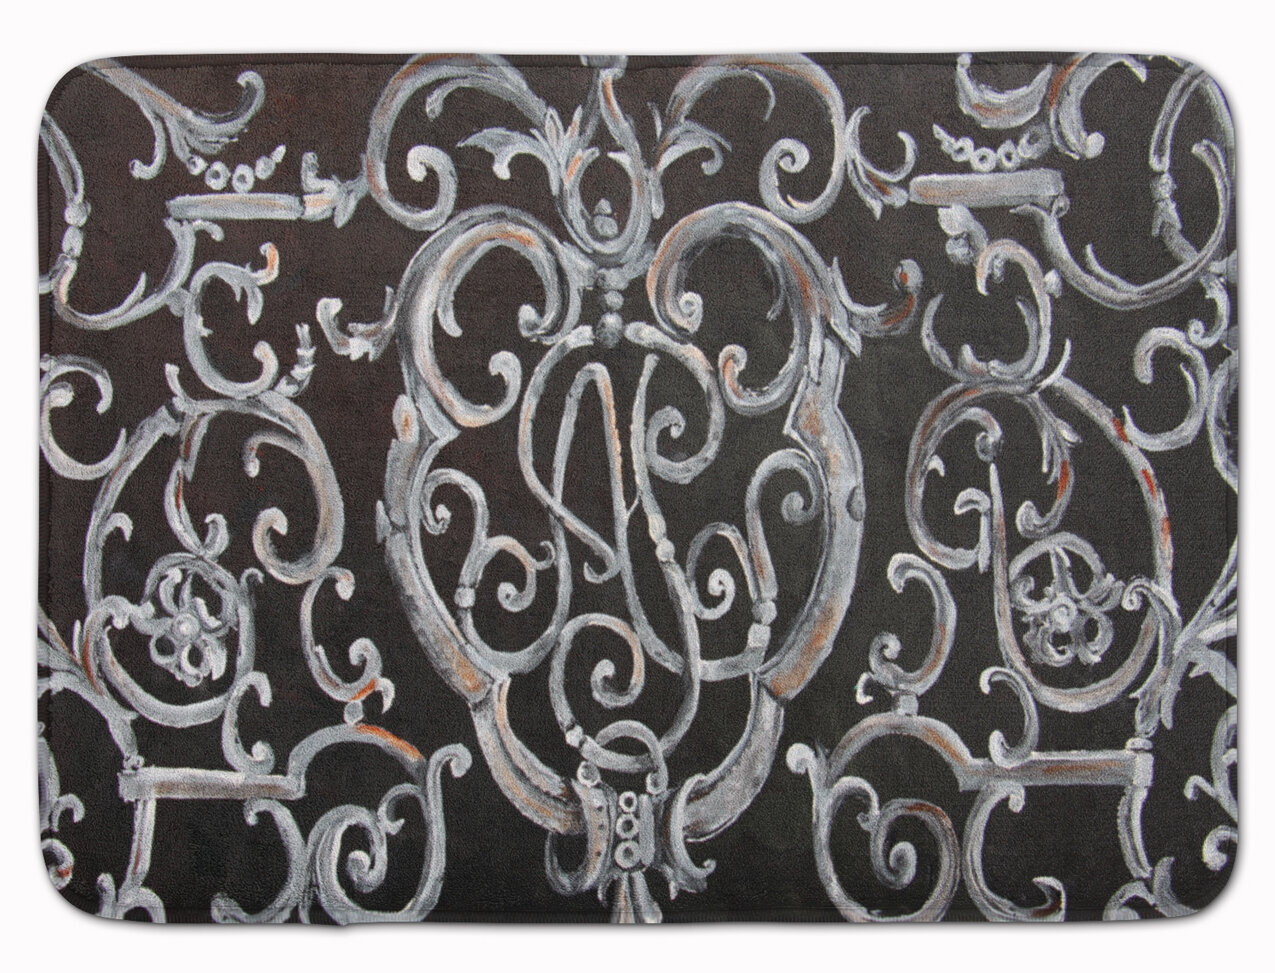 East Urban Home Ironwork Fence Rectangle Microfiber Non Slip Abstract Bath Rug Wayfair